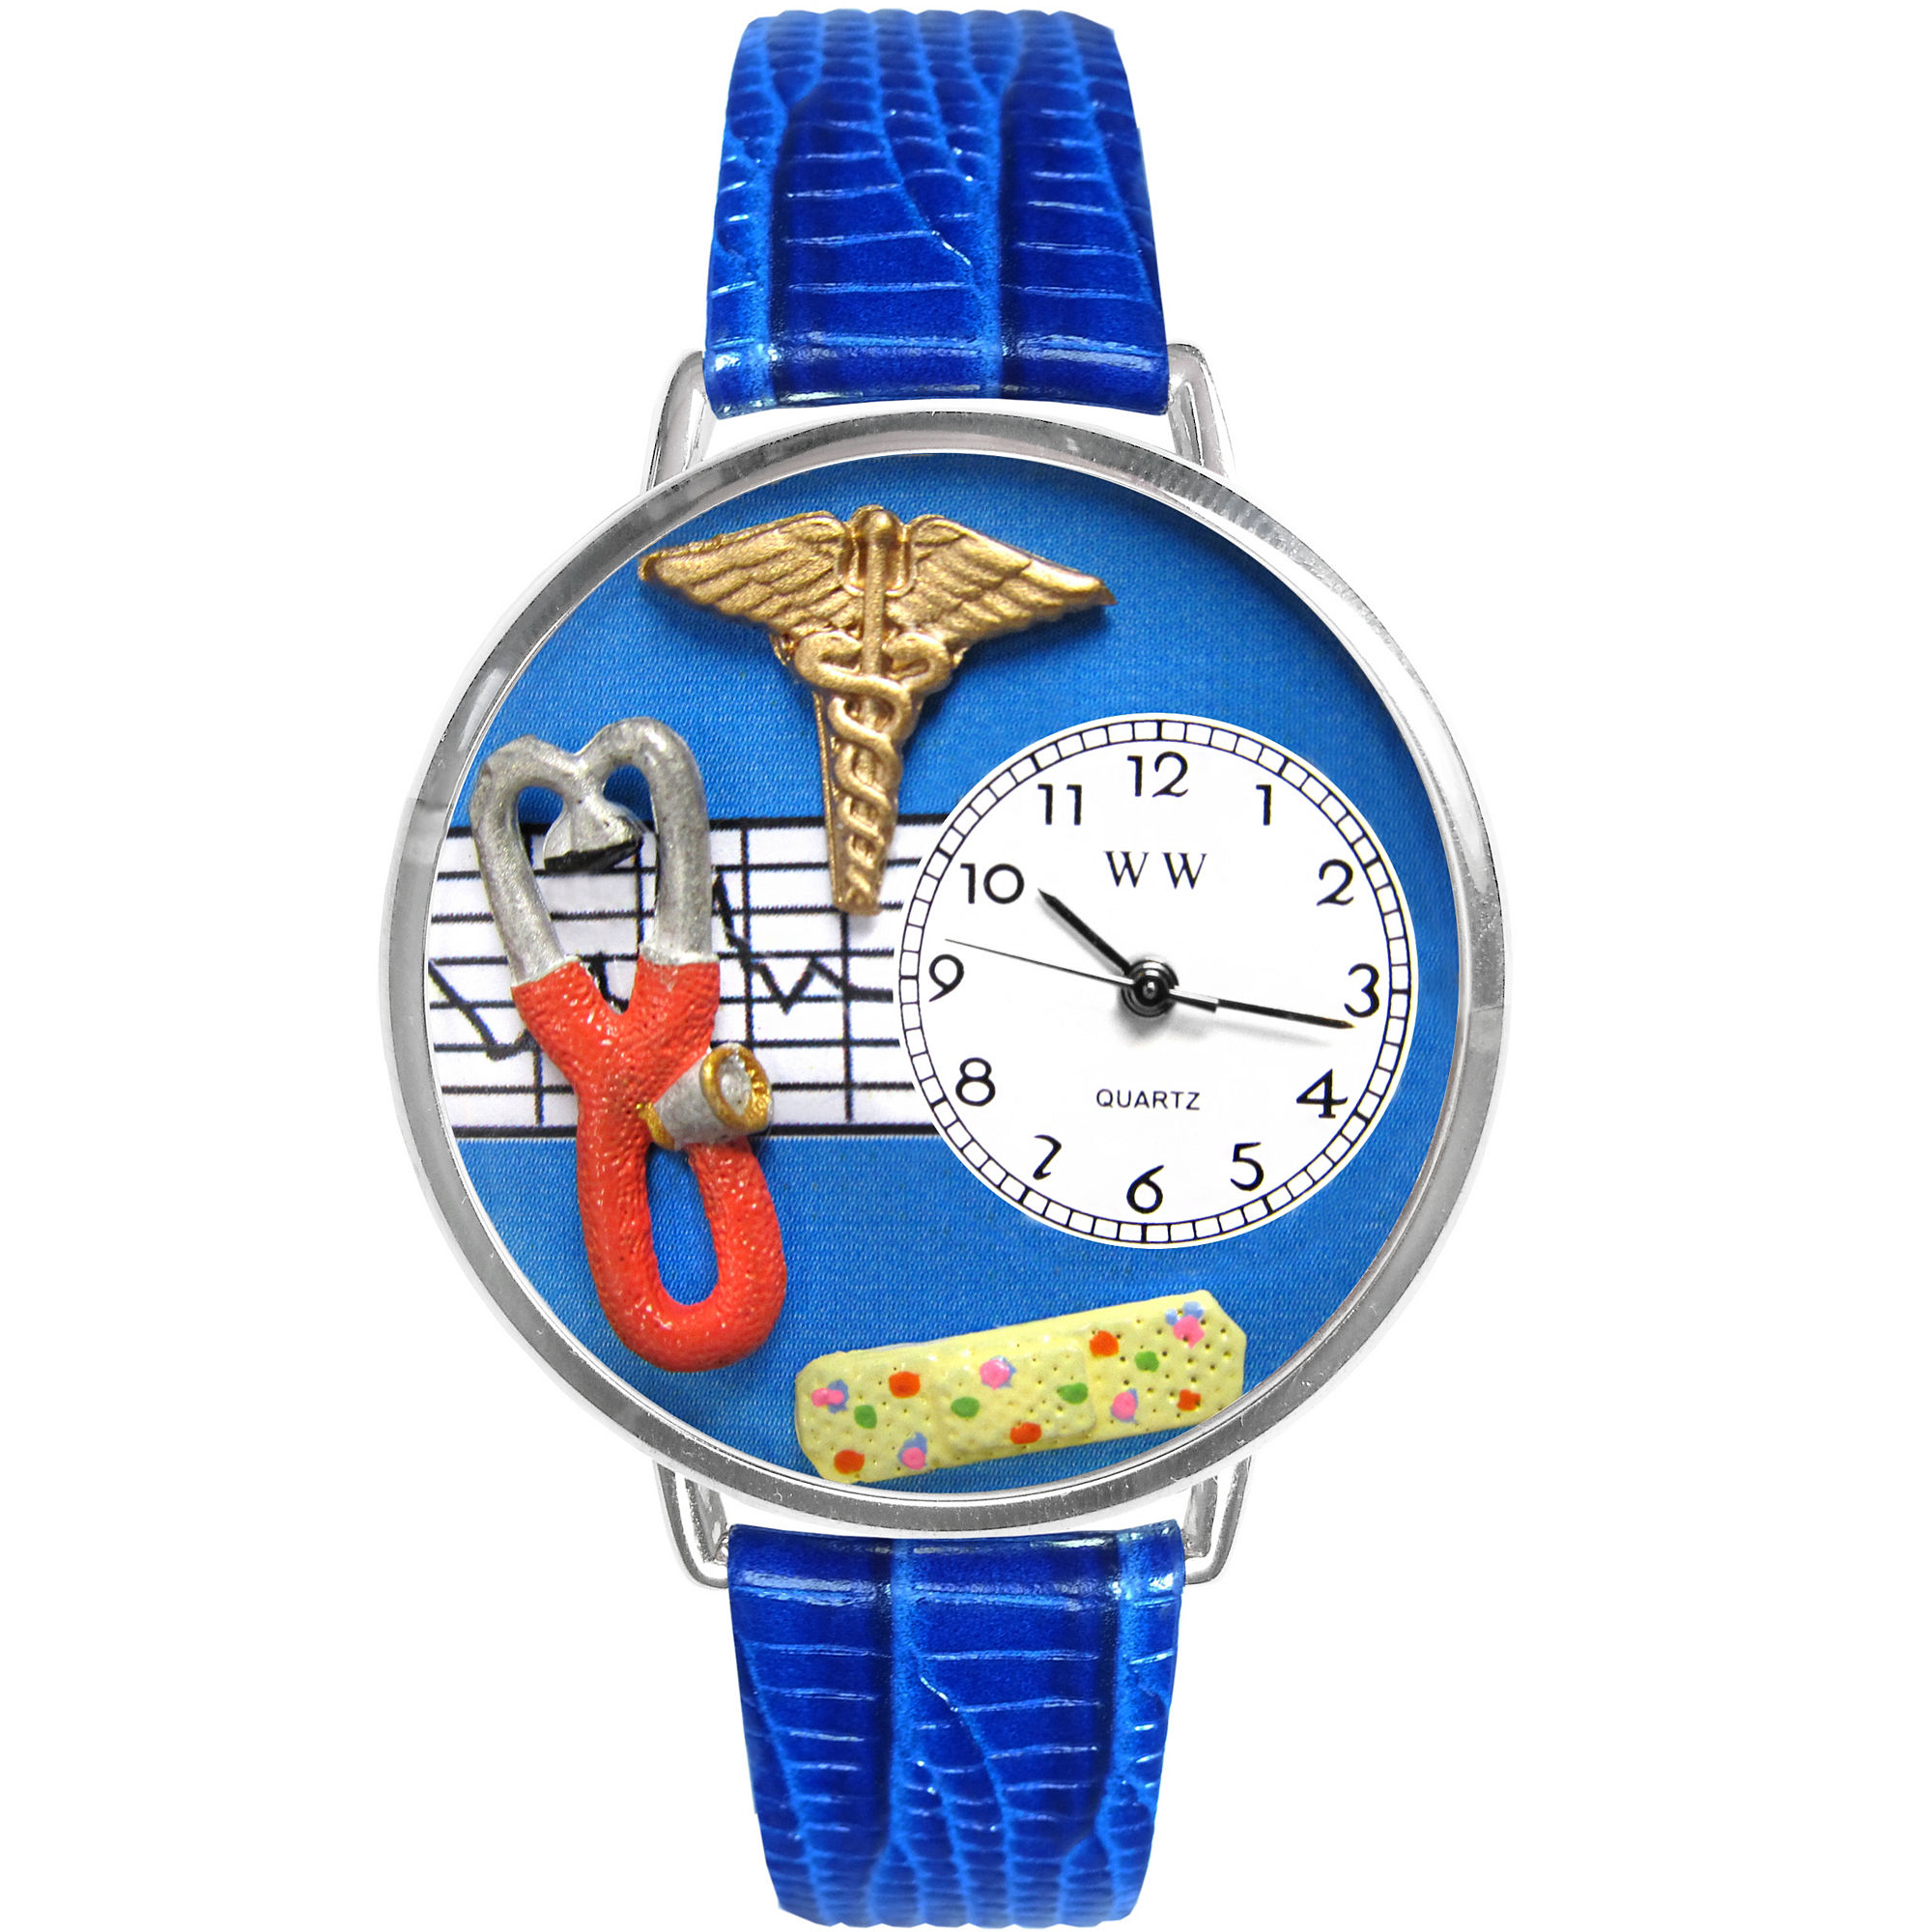 Whimsical Watches Personalized Nurse Womens Silver-Tone Bezel Blue Leather Strap Watch